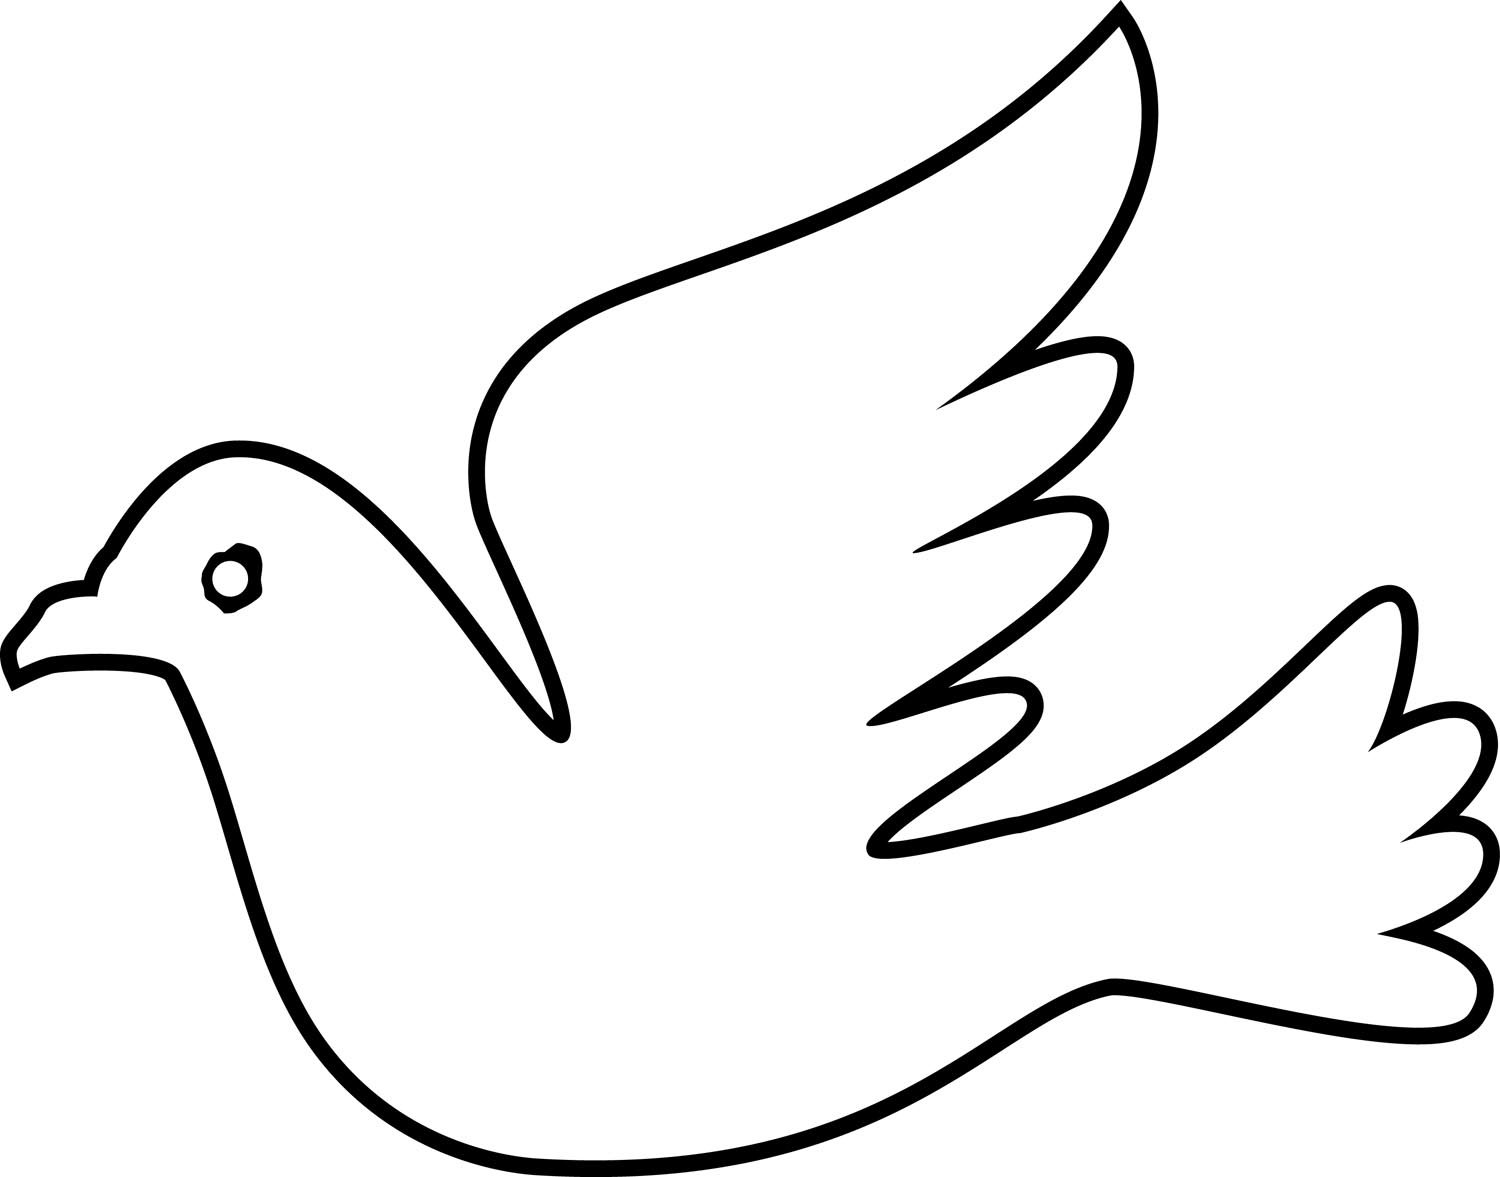 Dove Coloring Page - Coloring Sheet Dove Free Image